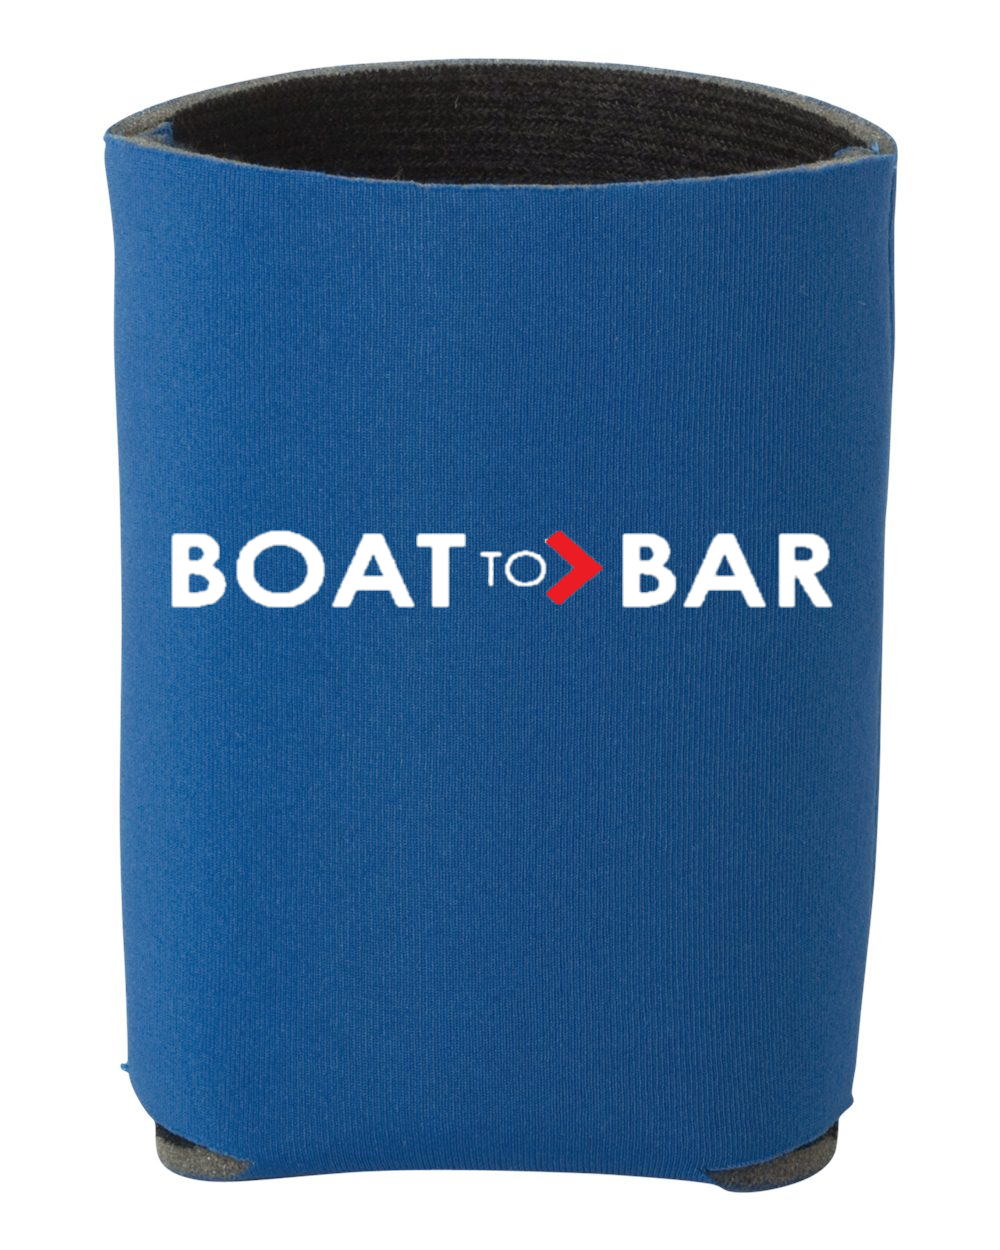 Boat to Bar Koozie - 4 Colors Available